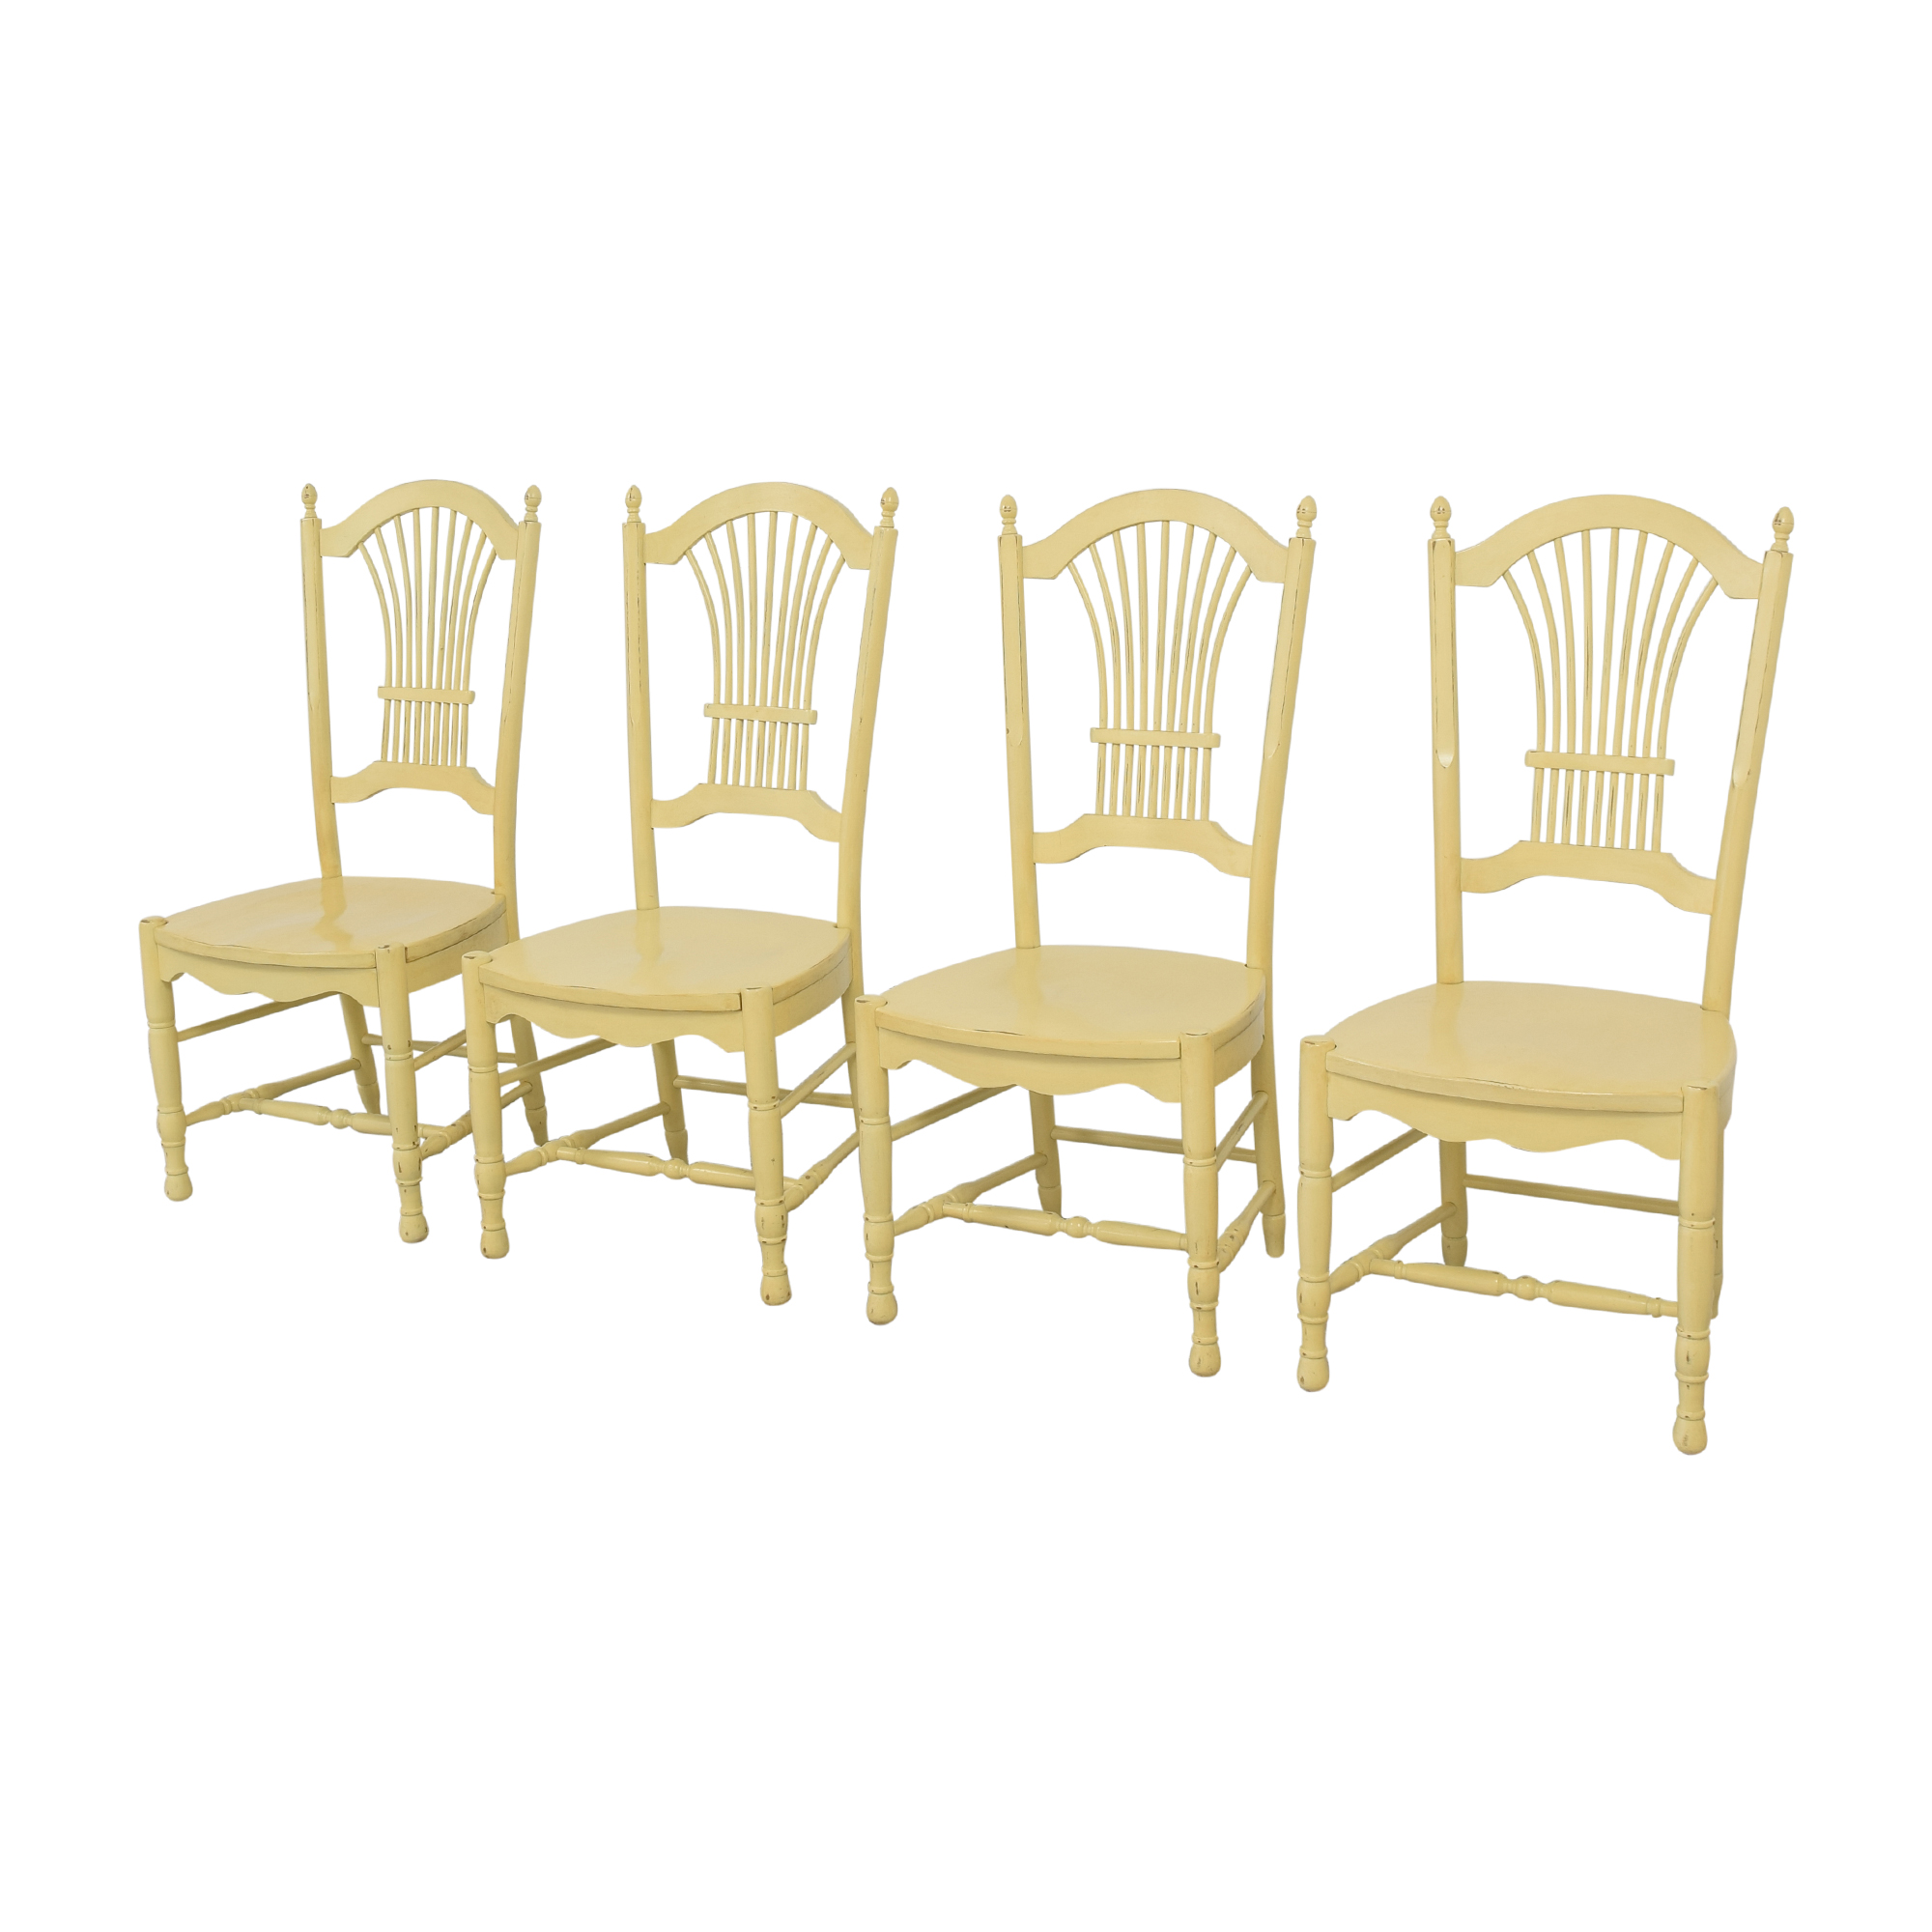 Ethan Allen Ethan Allen Wheat Back Dining Chairs nyc